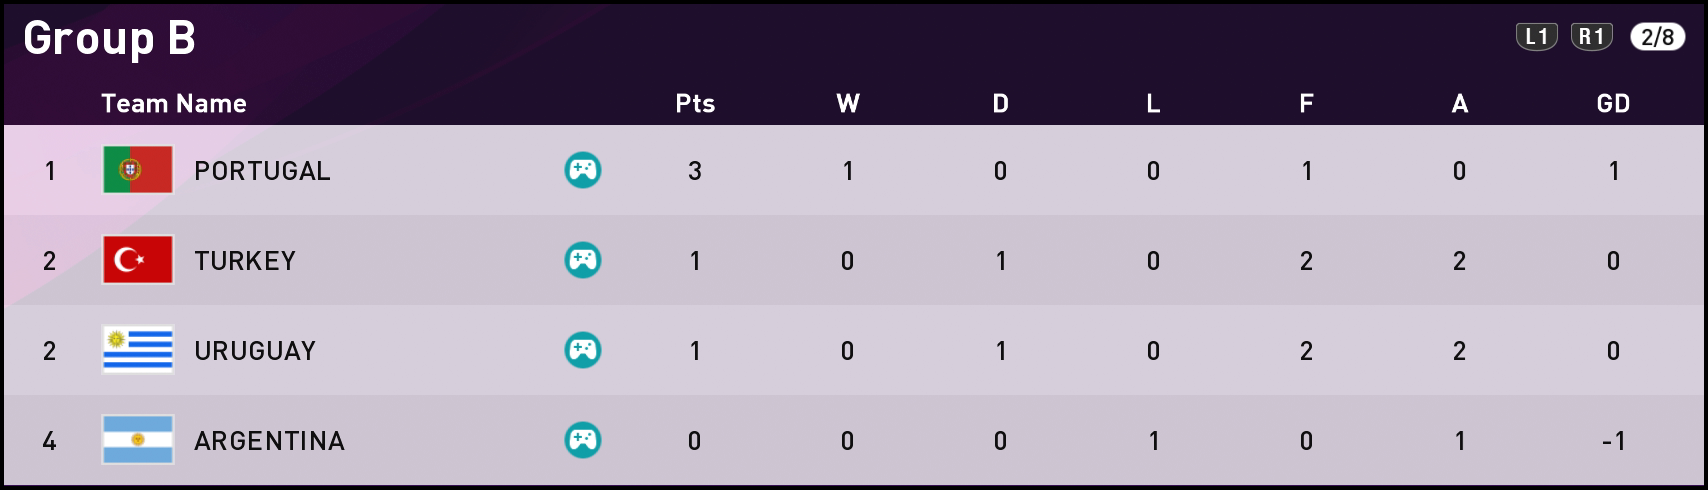 FTWC20-Group-B-1-Game.png